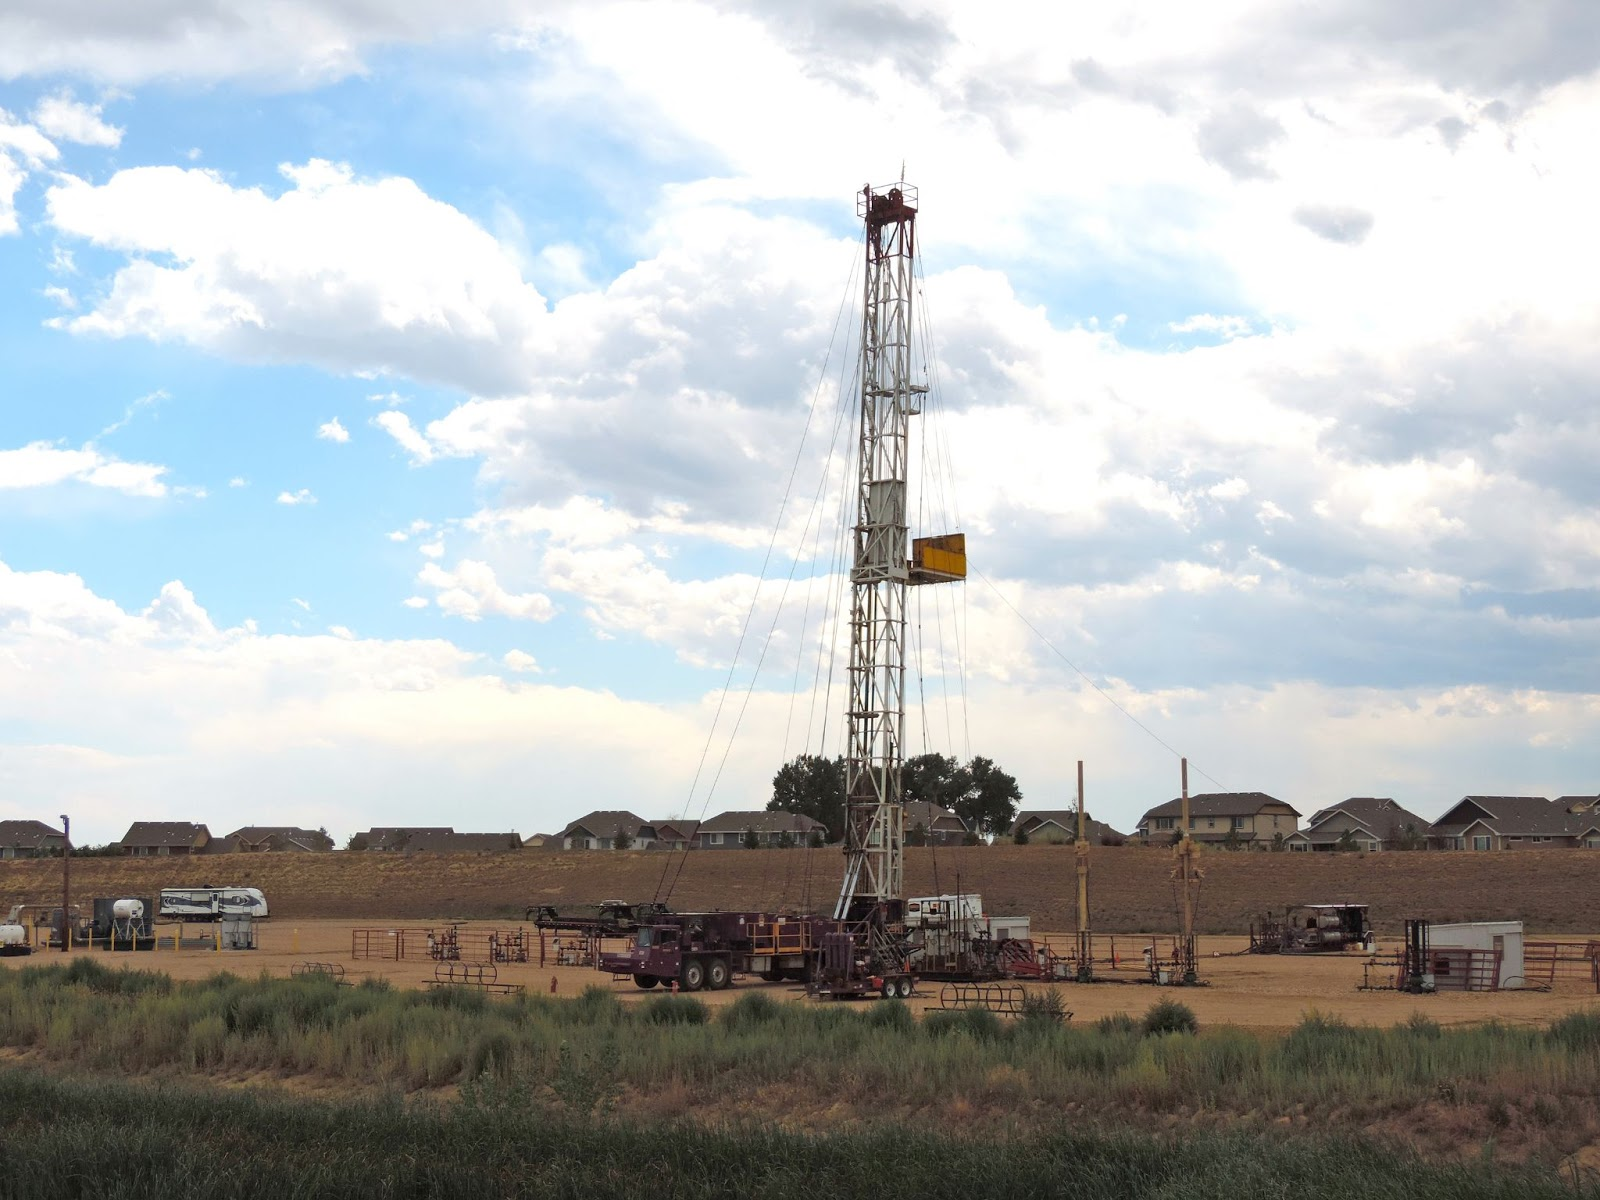 Fracking site, Weld County